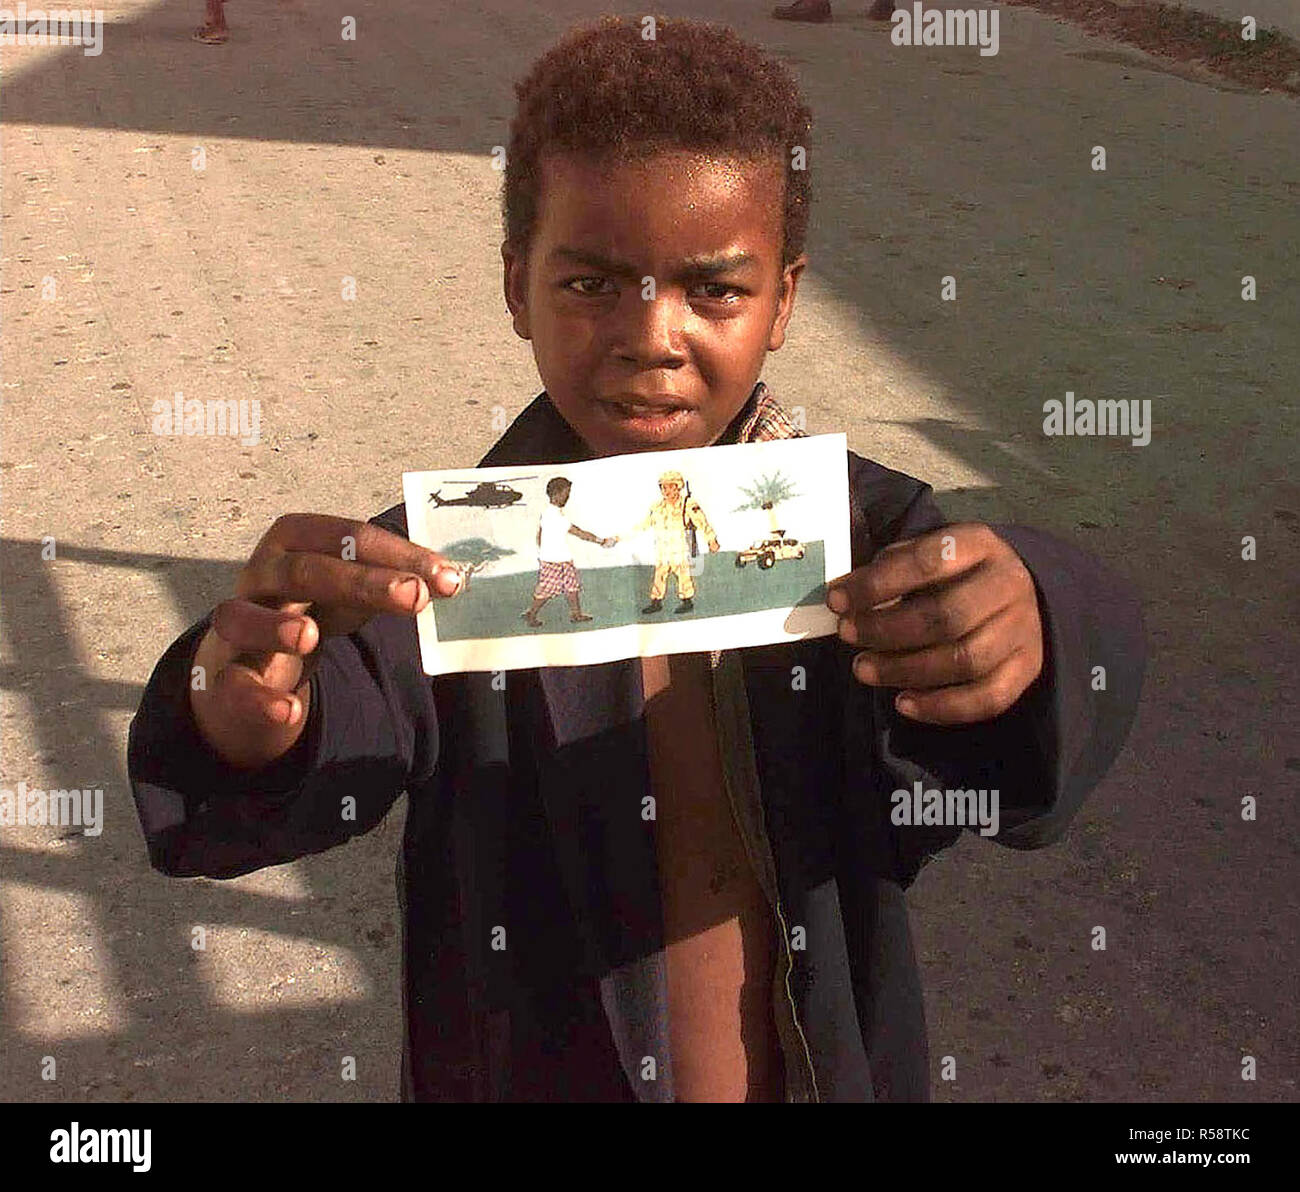 1993 - A young Somali boy holding one of the PSYOPS leaflets up to the camera.  The leaflet is a hand drawing a Somali man shaking the hand of a US Forces member.  The drawing conveys to the Somali people that the US is trying to help end their suffering and is here as their friends. - Stock Image